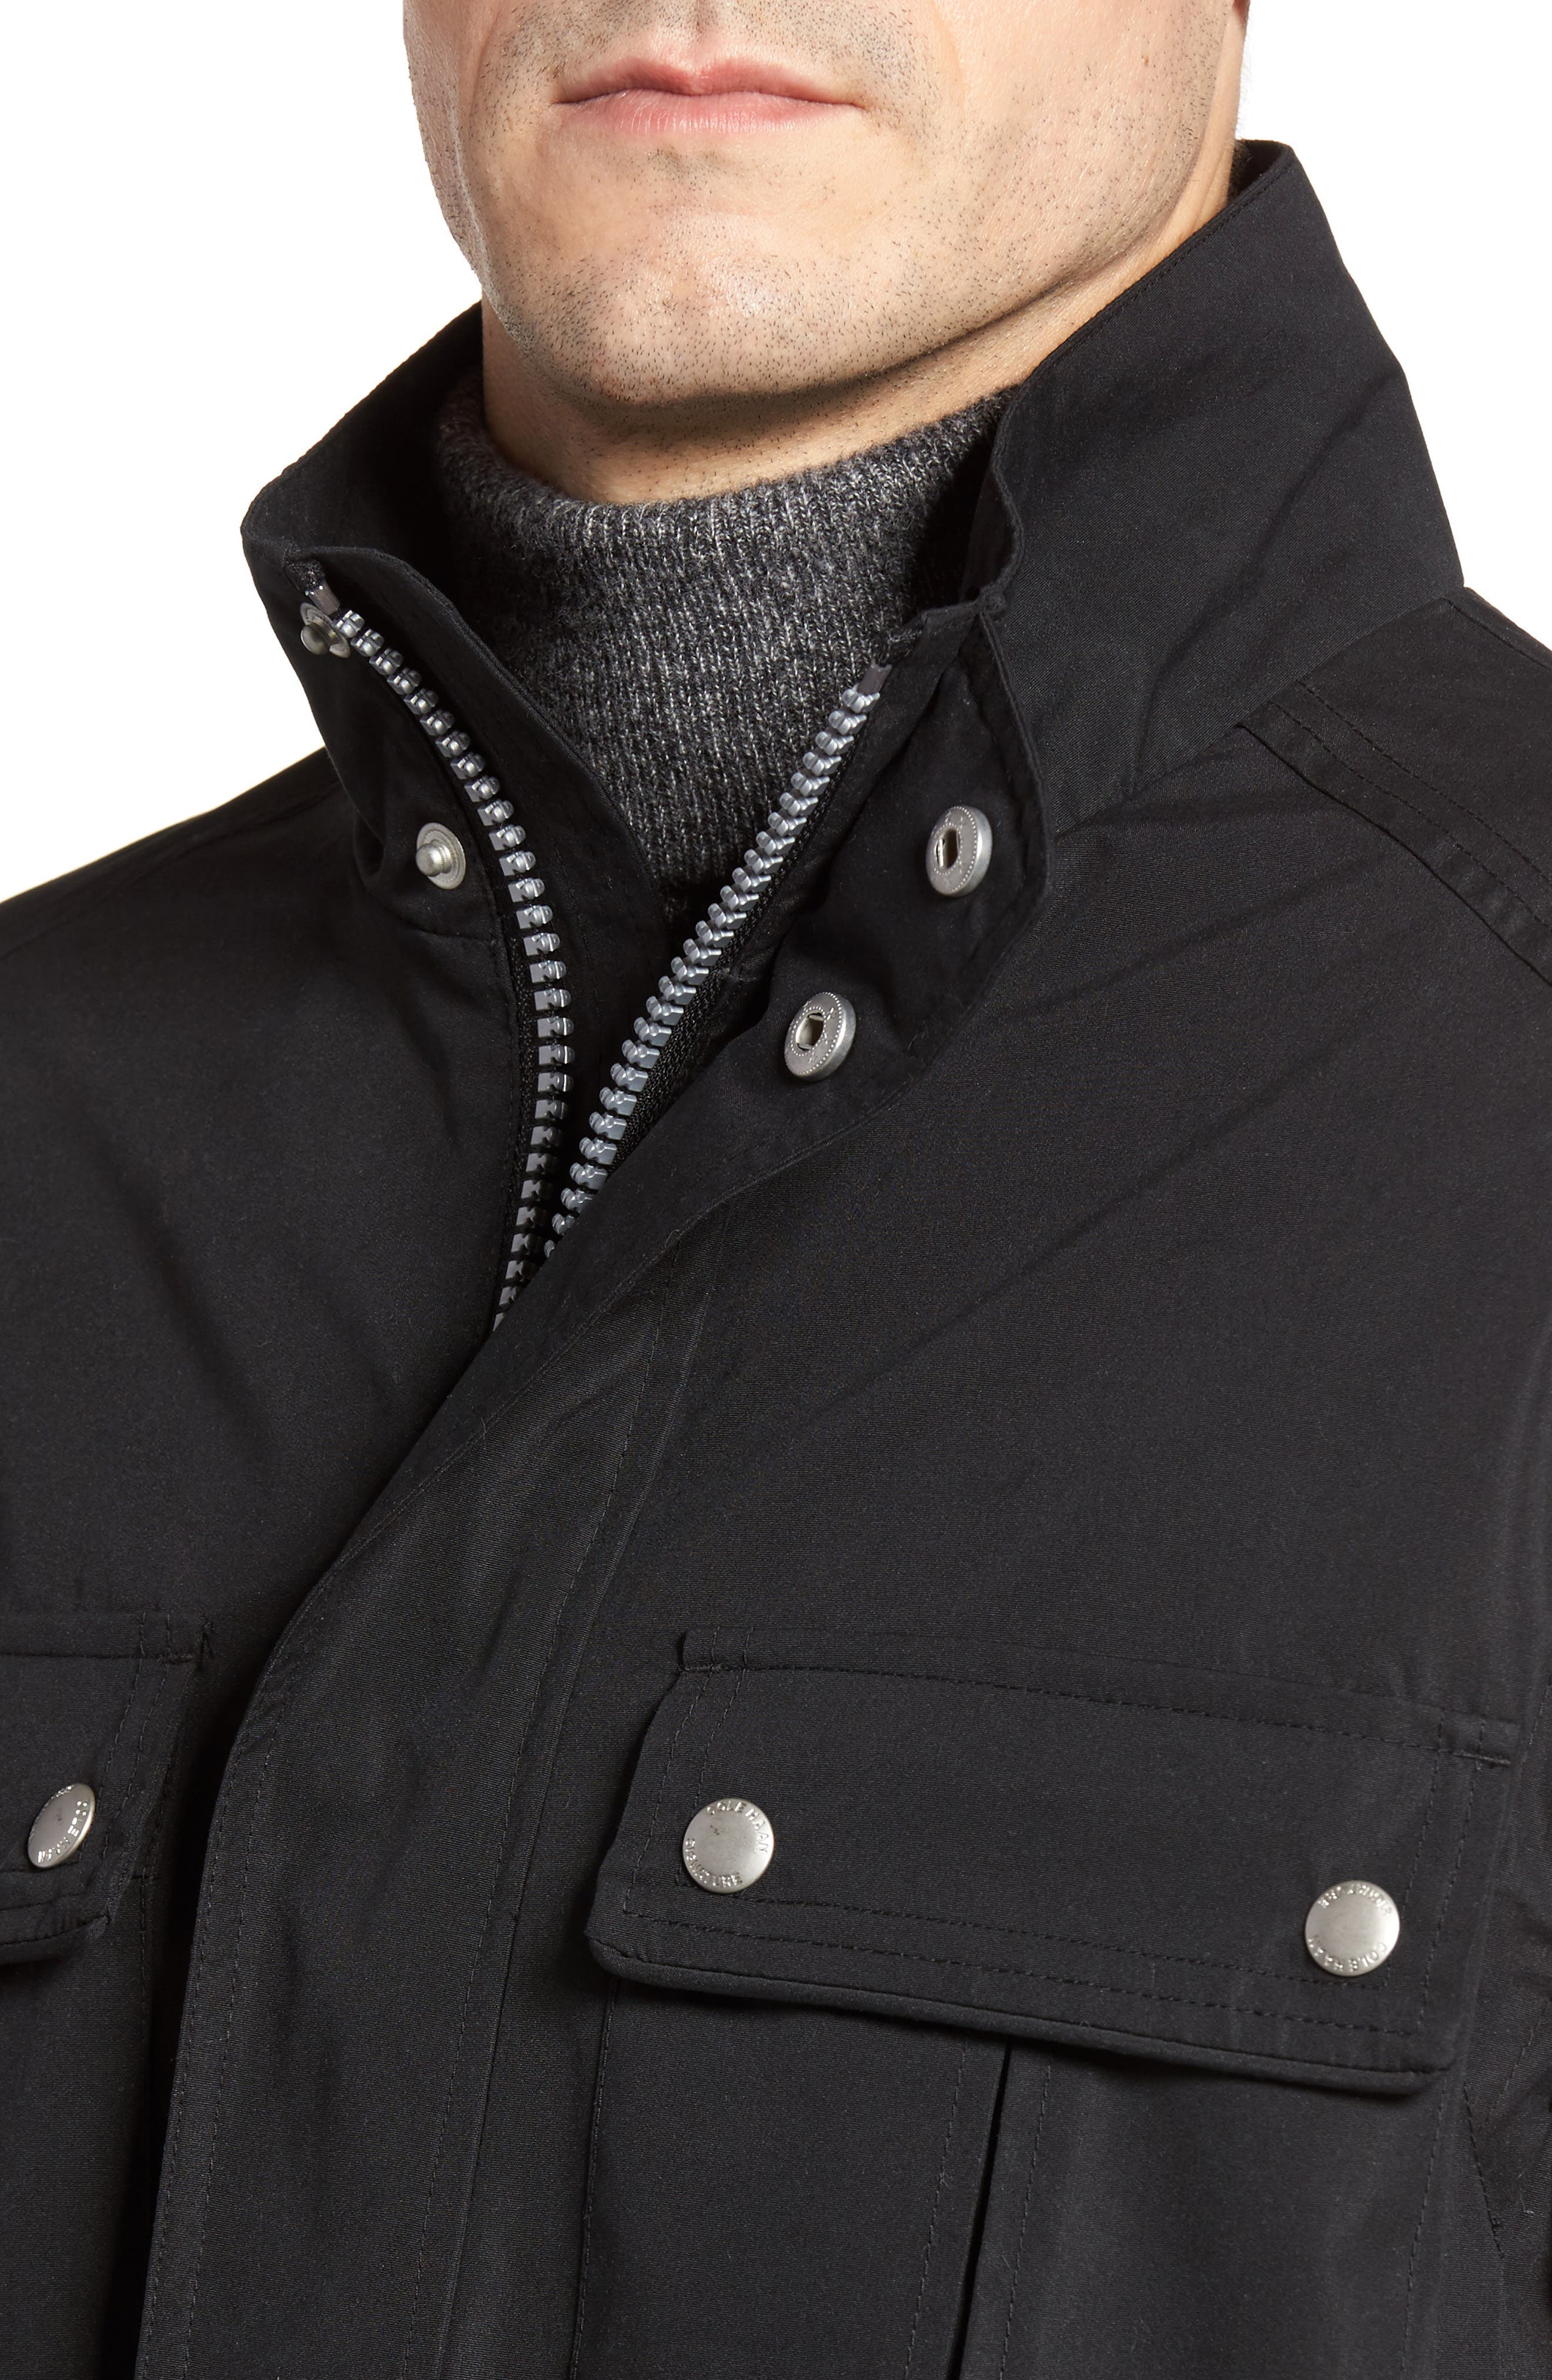 Stand Collar Water Repellent Jacket,                             Alternate thumbnail 4, color,                             001